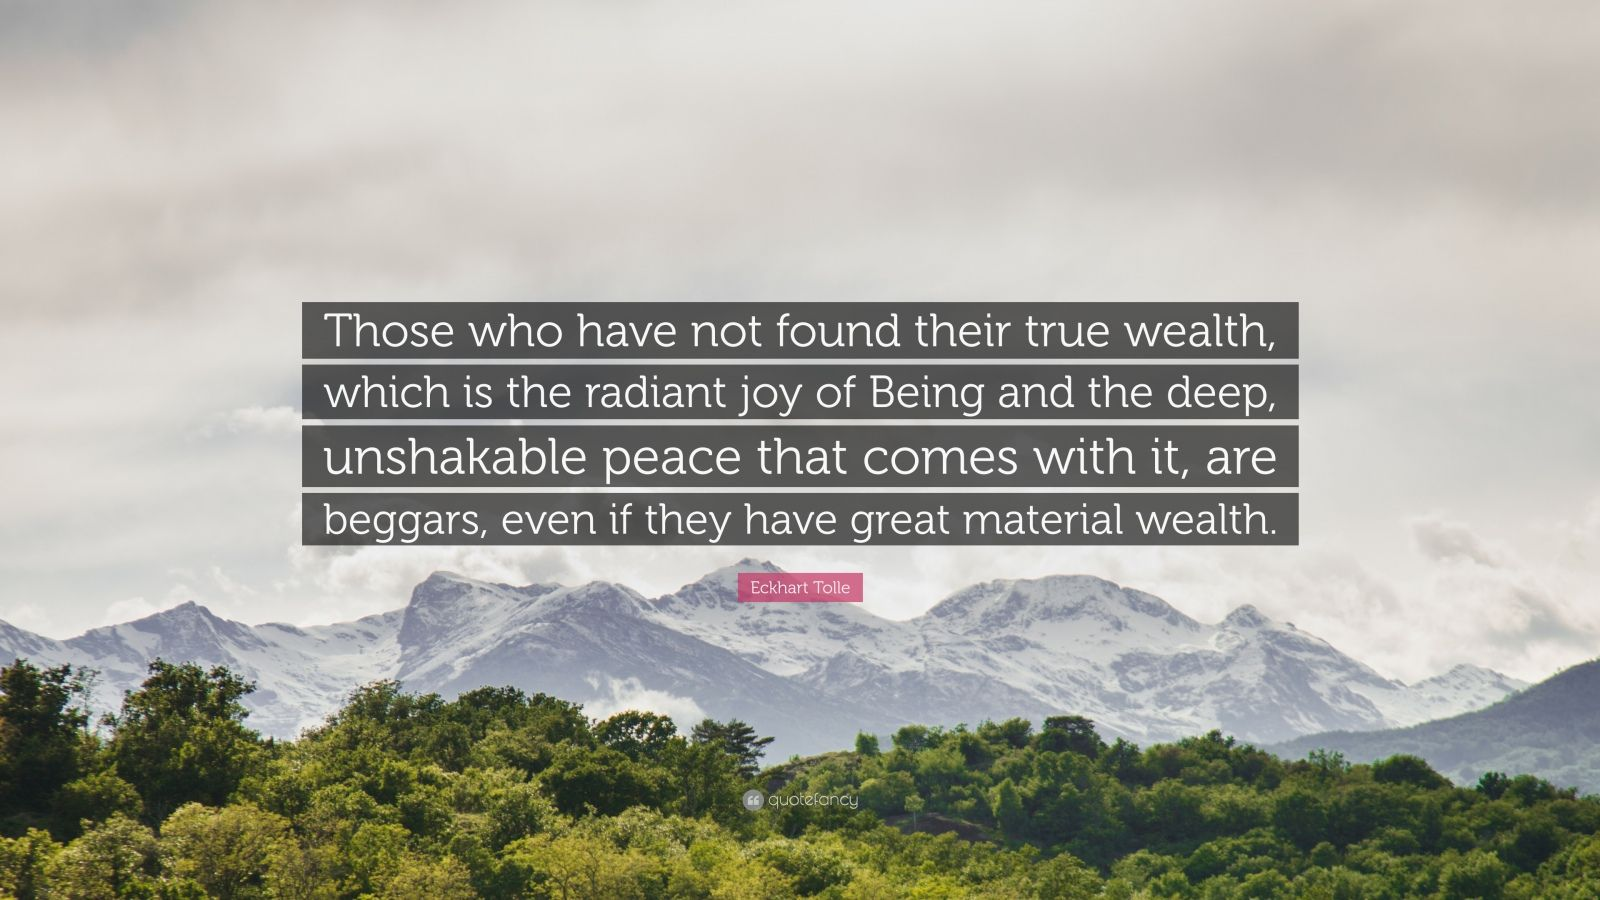 """Eckhart Tolle Quote: """"Those who have not found their true wealth, which is the radiant joy of Being and the deep, unshakable peace that comes with it, are beggars, even if they have great material wealth."""""""